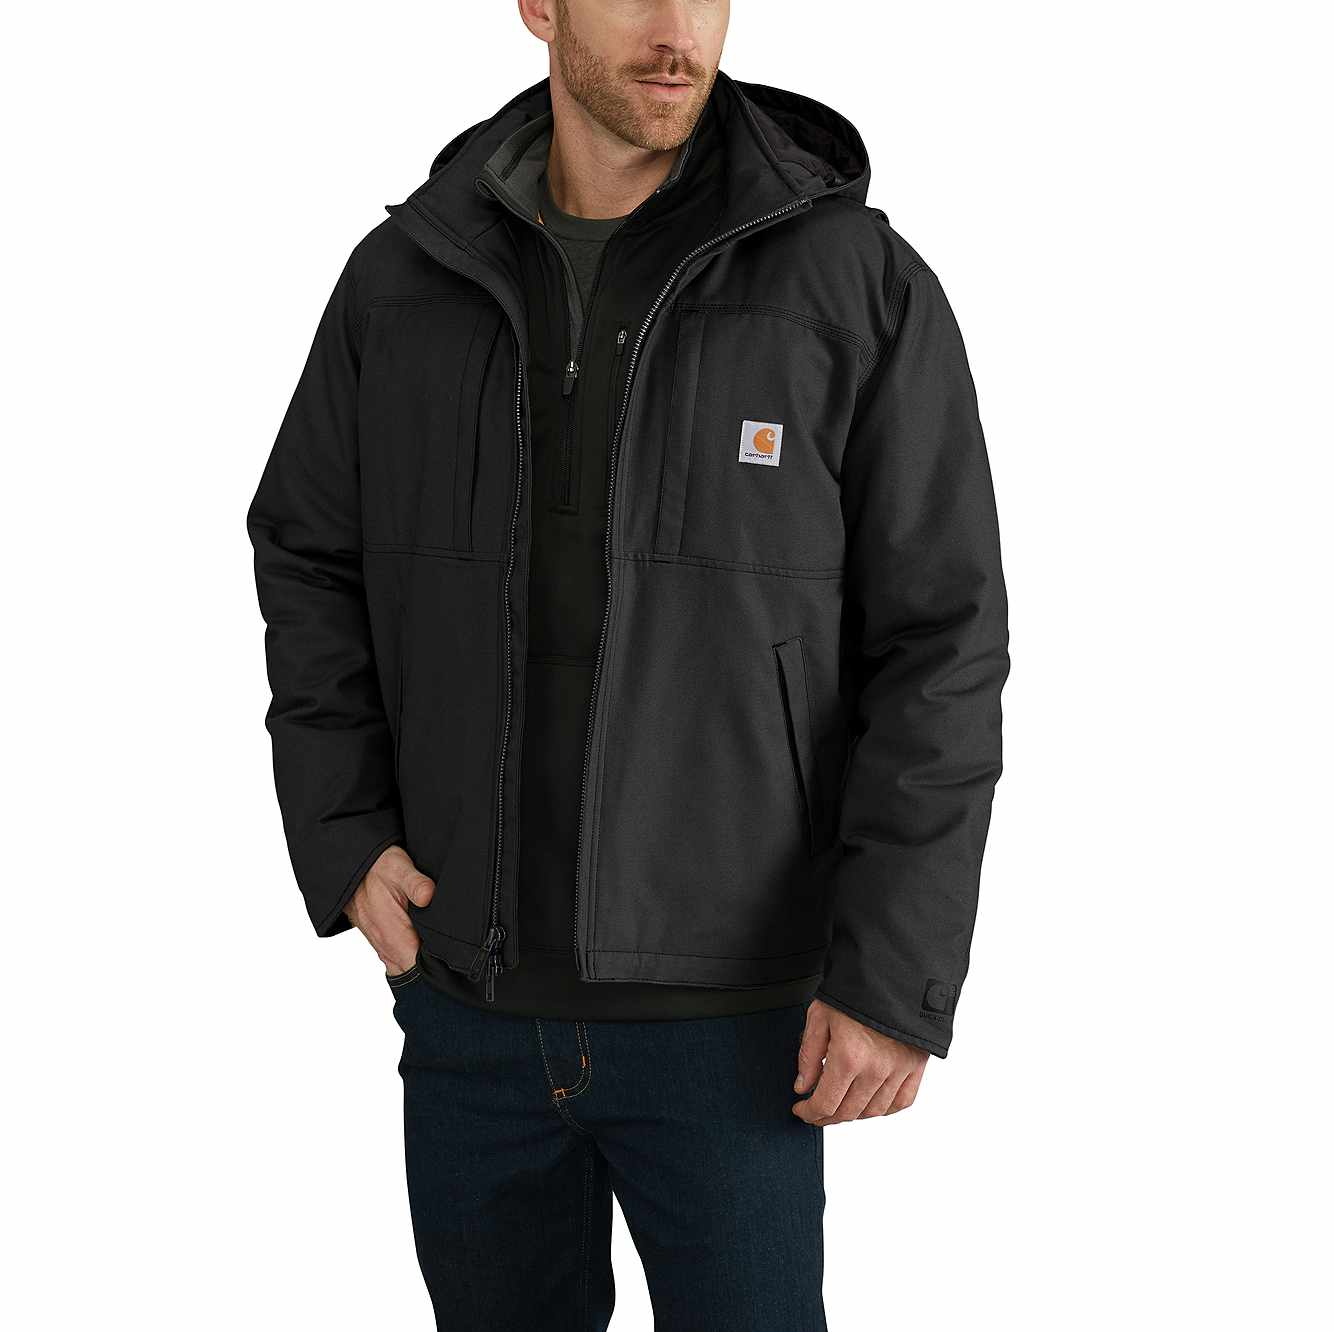 Picture of Full Swing® Cryder Jacket in Black